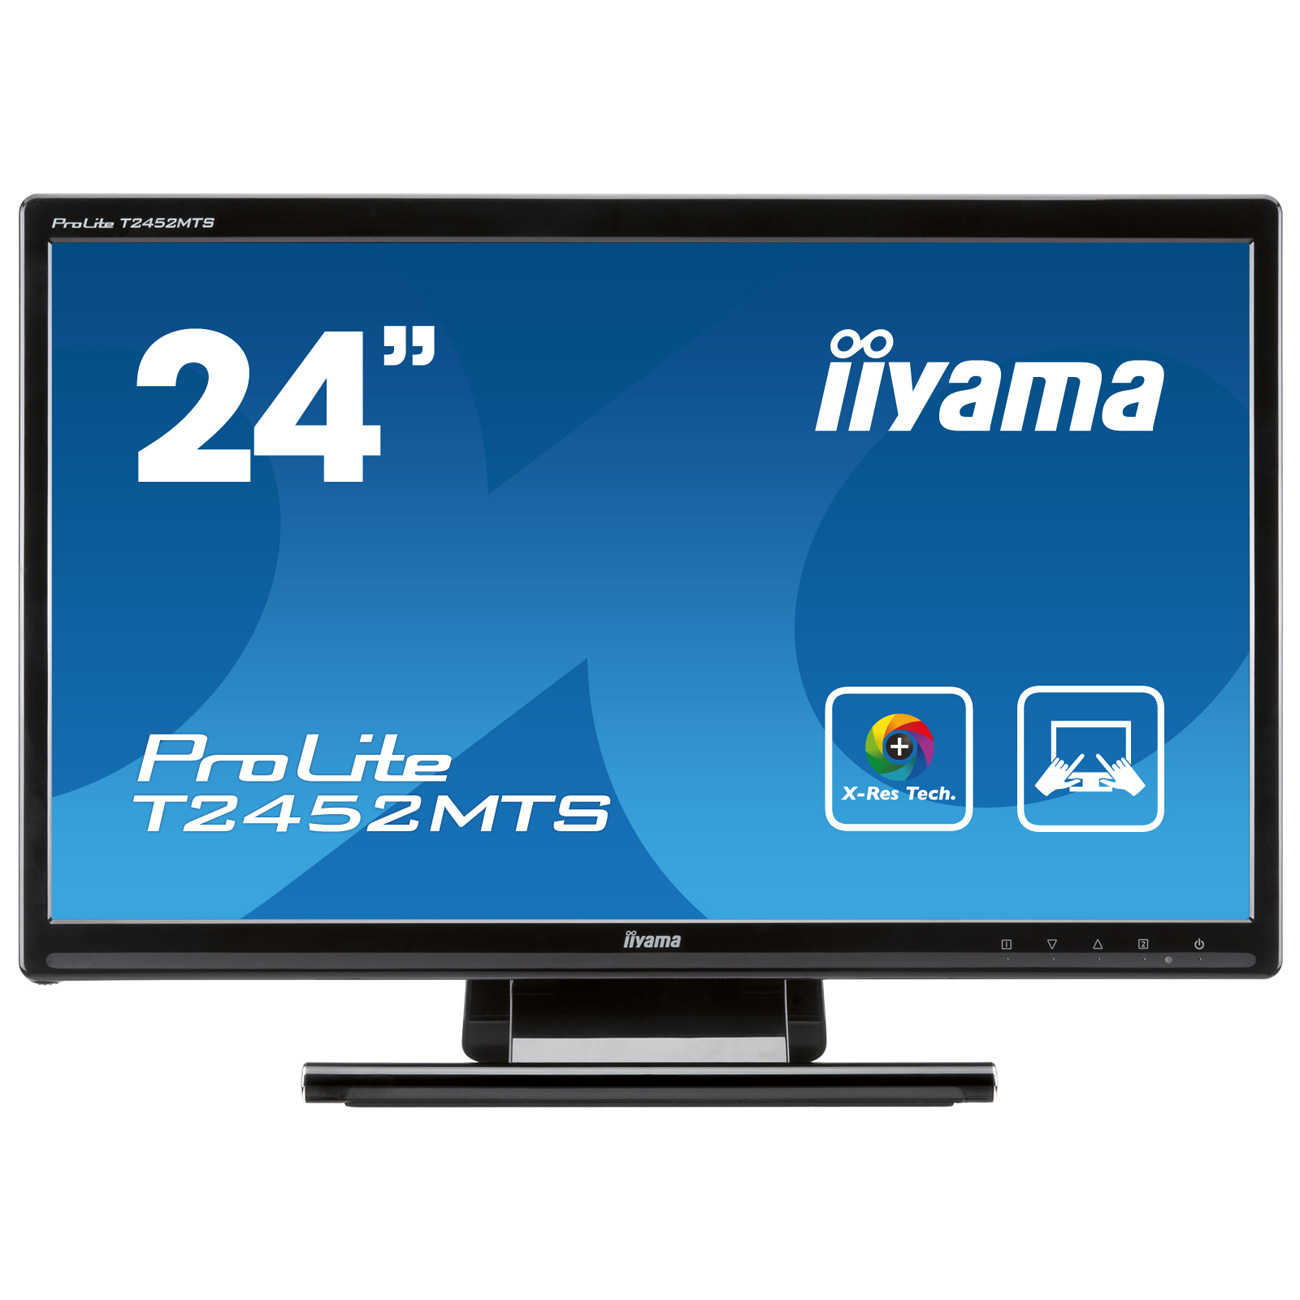 iiyama 23 6 led tactile prolite t2452mts ecran pc iiyama sur. Black Bedroom Furniture Sets. Home Design Ideas